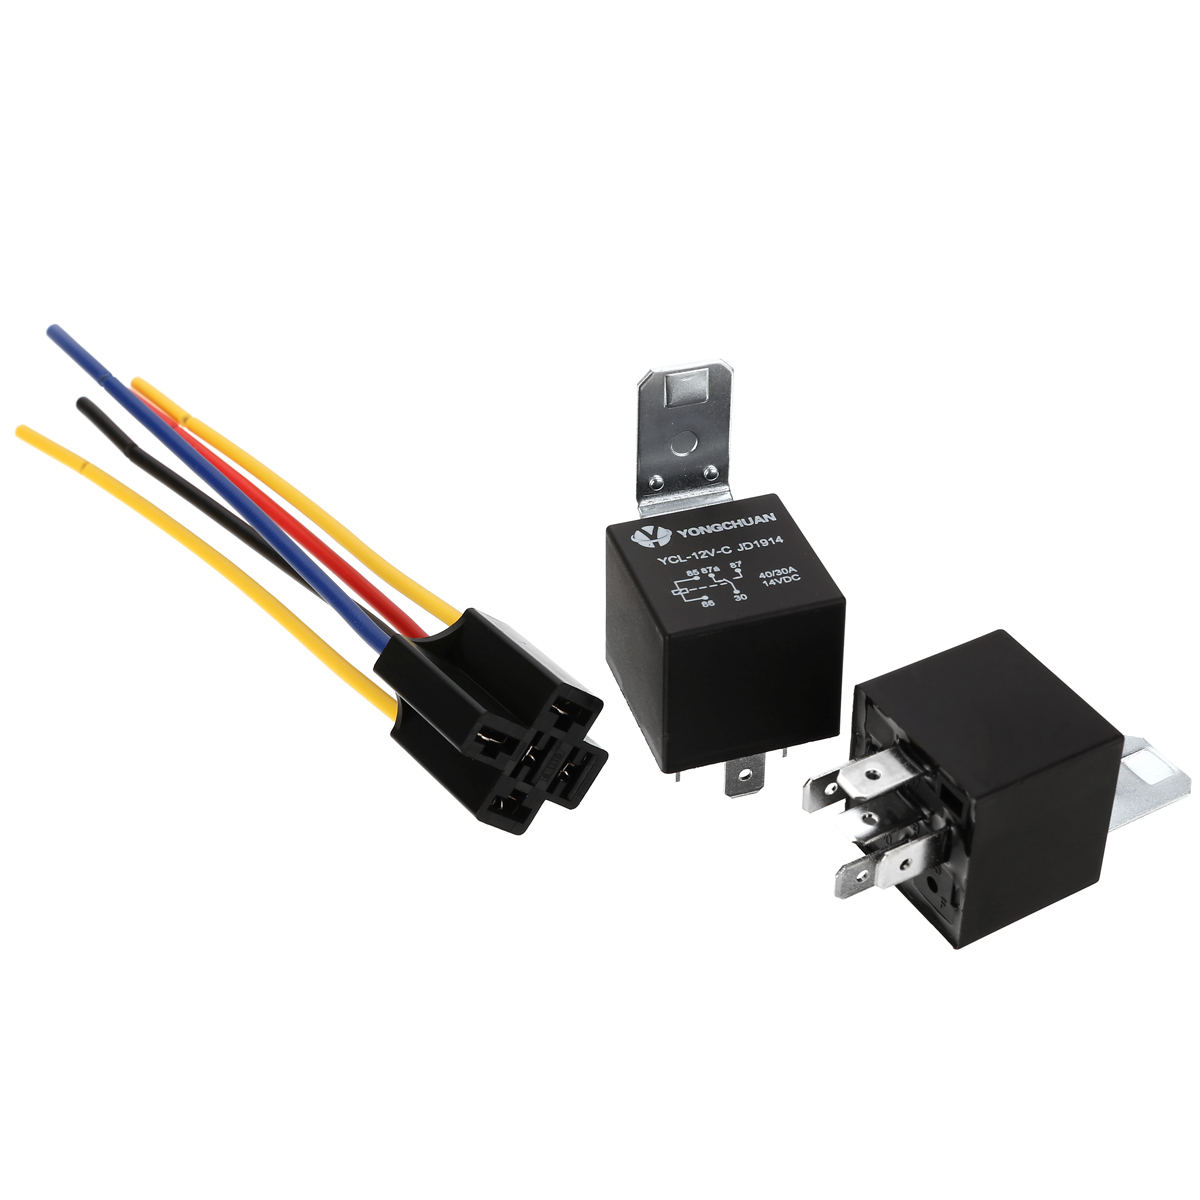 5 Set 12V <font><b>DC</b></font> Car Relay <font><b>40A</b></font> Relay & Socket SPDT 5 Pin with 5 Wires <font><b>12</b></font> Volt For Automobile Truck Accessories image